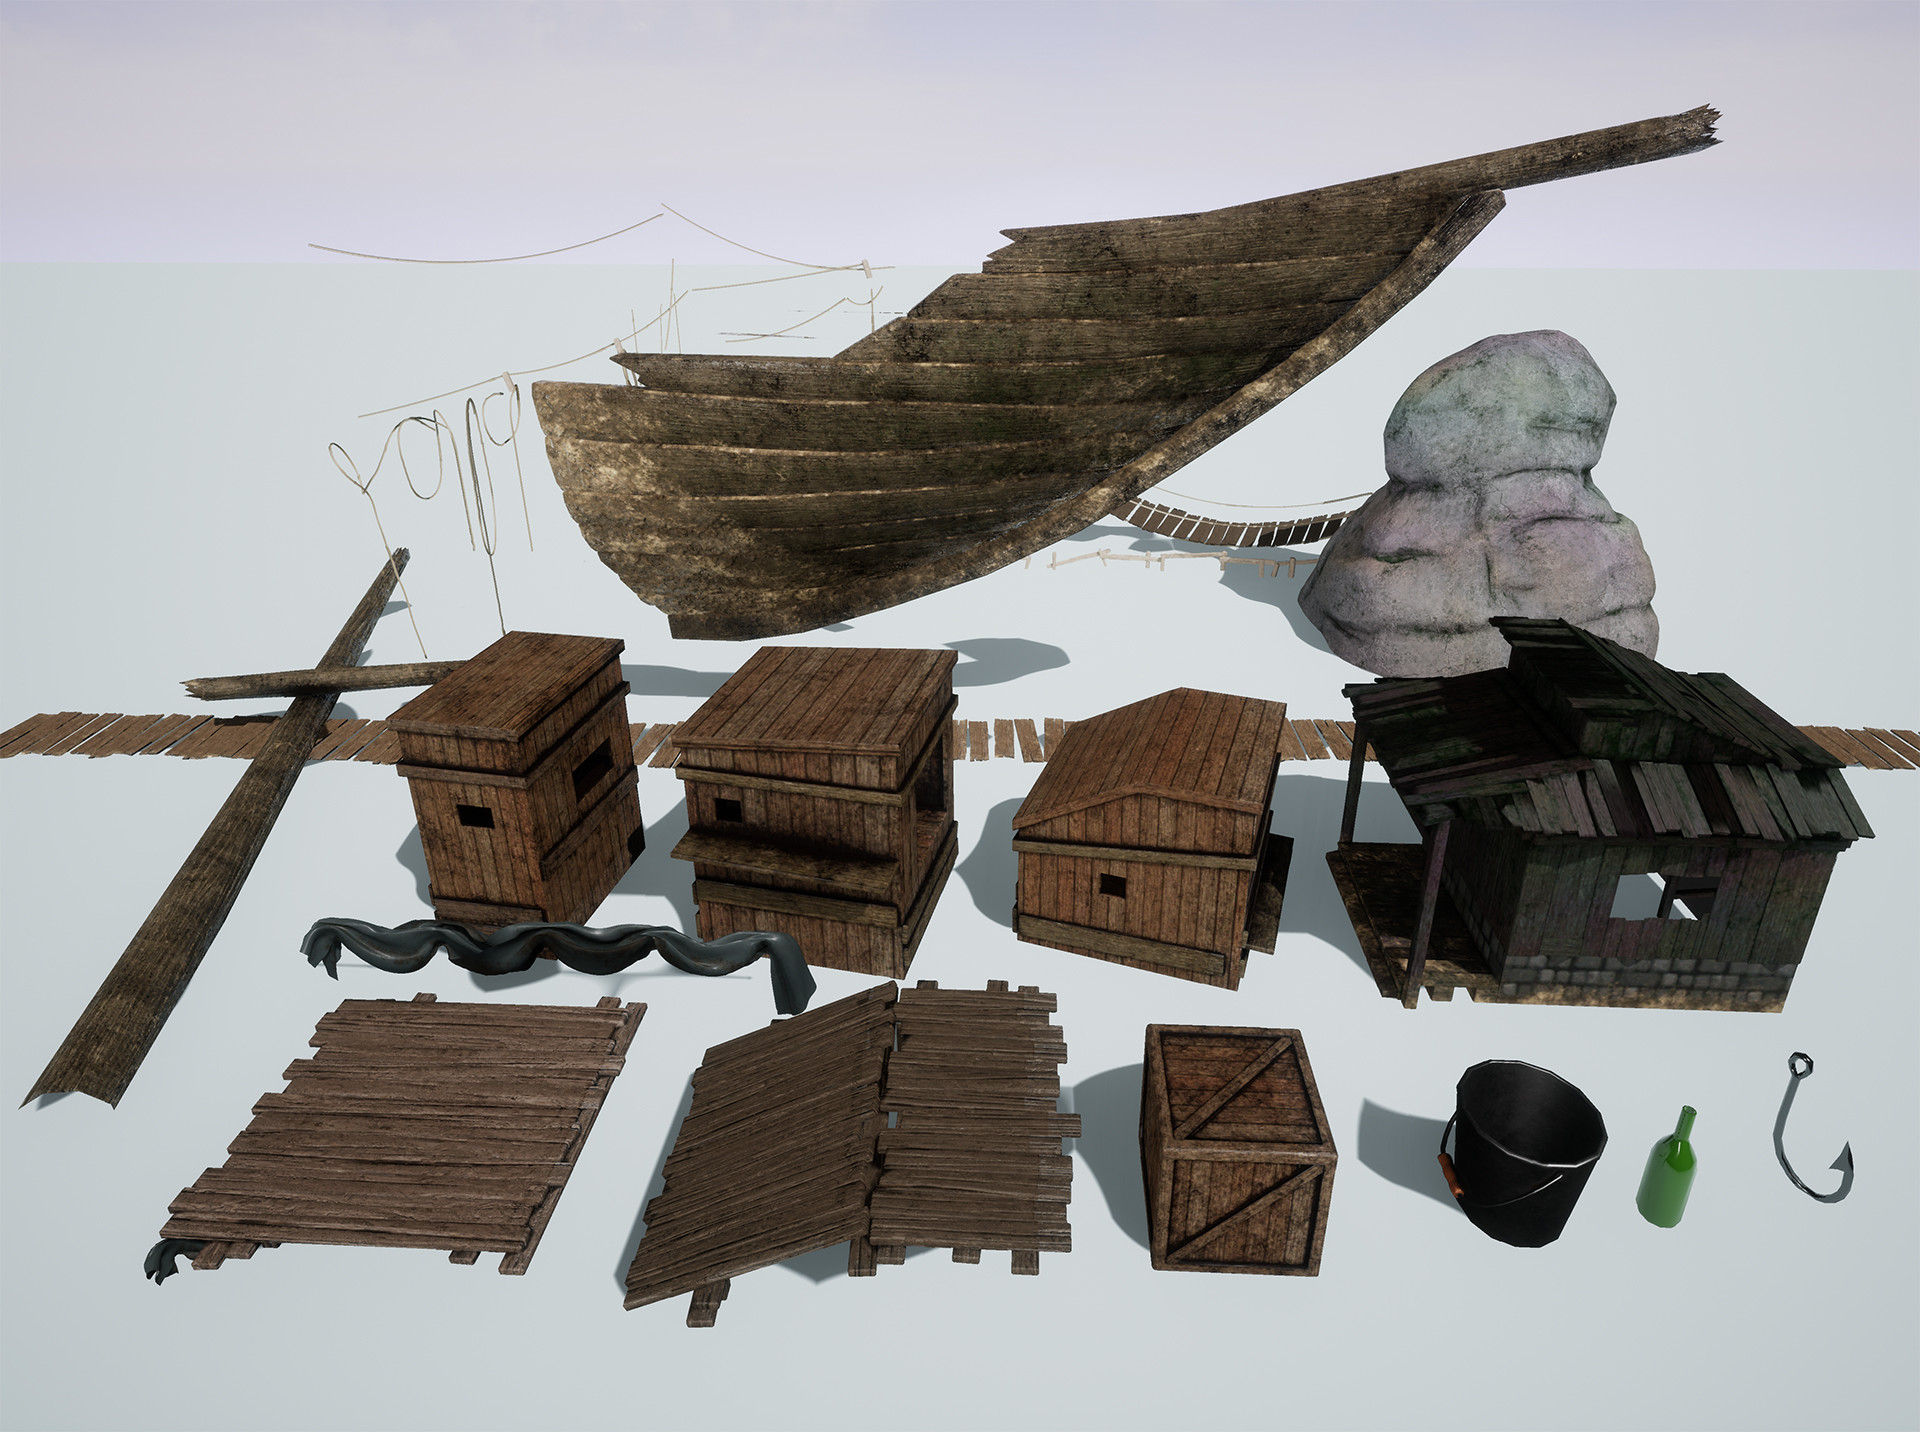 Most of the props used in the scene